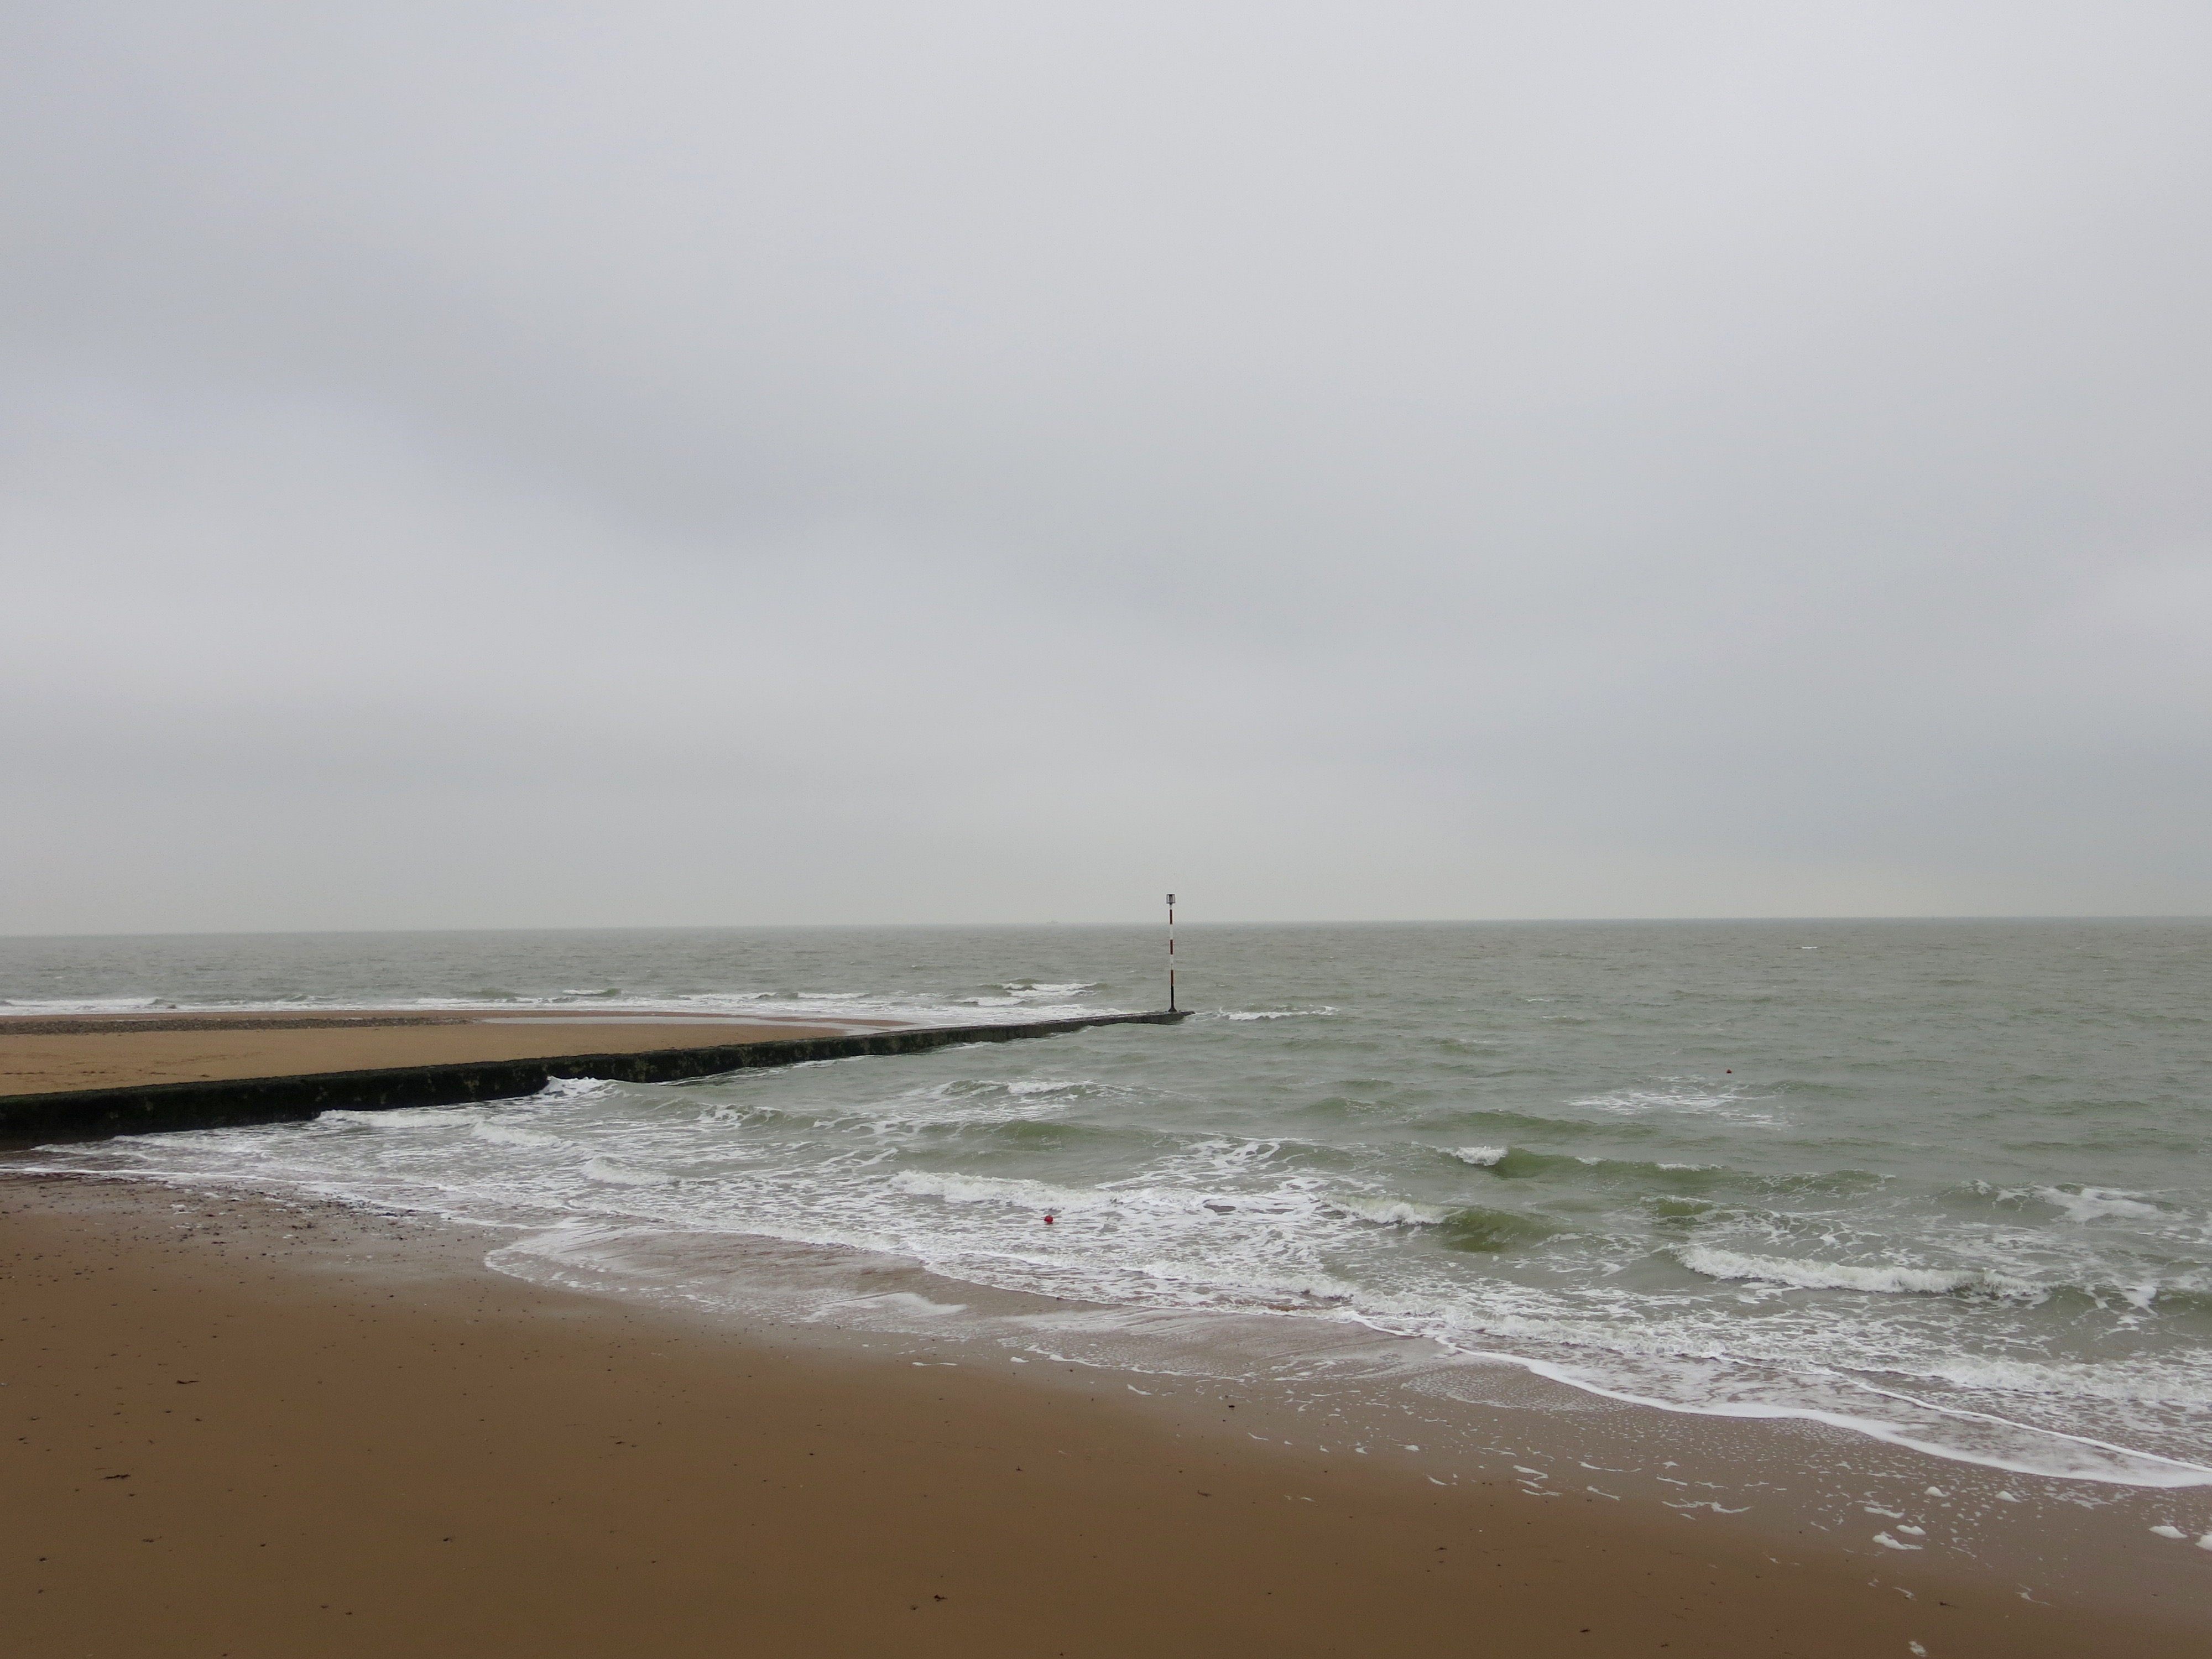 Ramsgate to Margate - 1 (5)